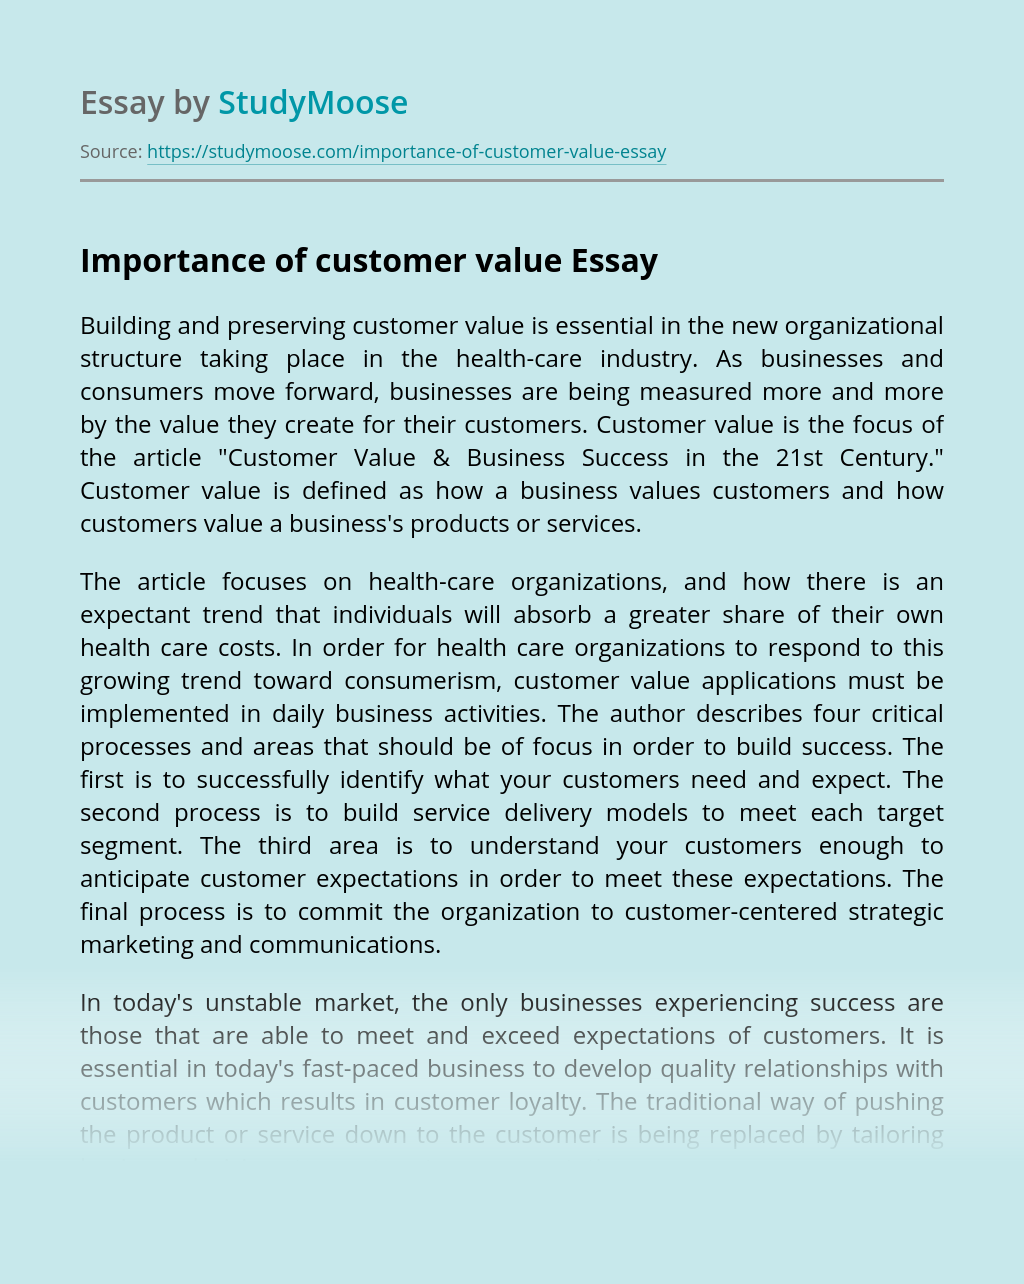 Importance of customer value